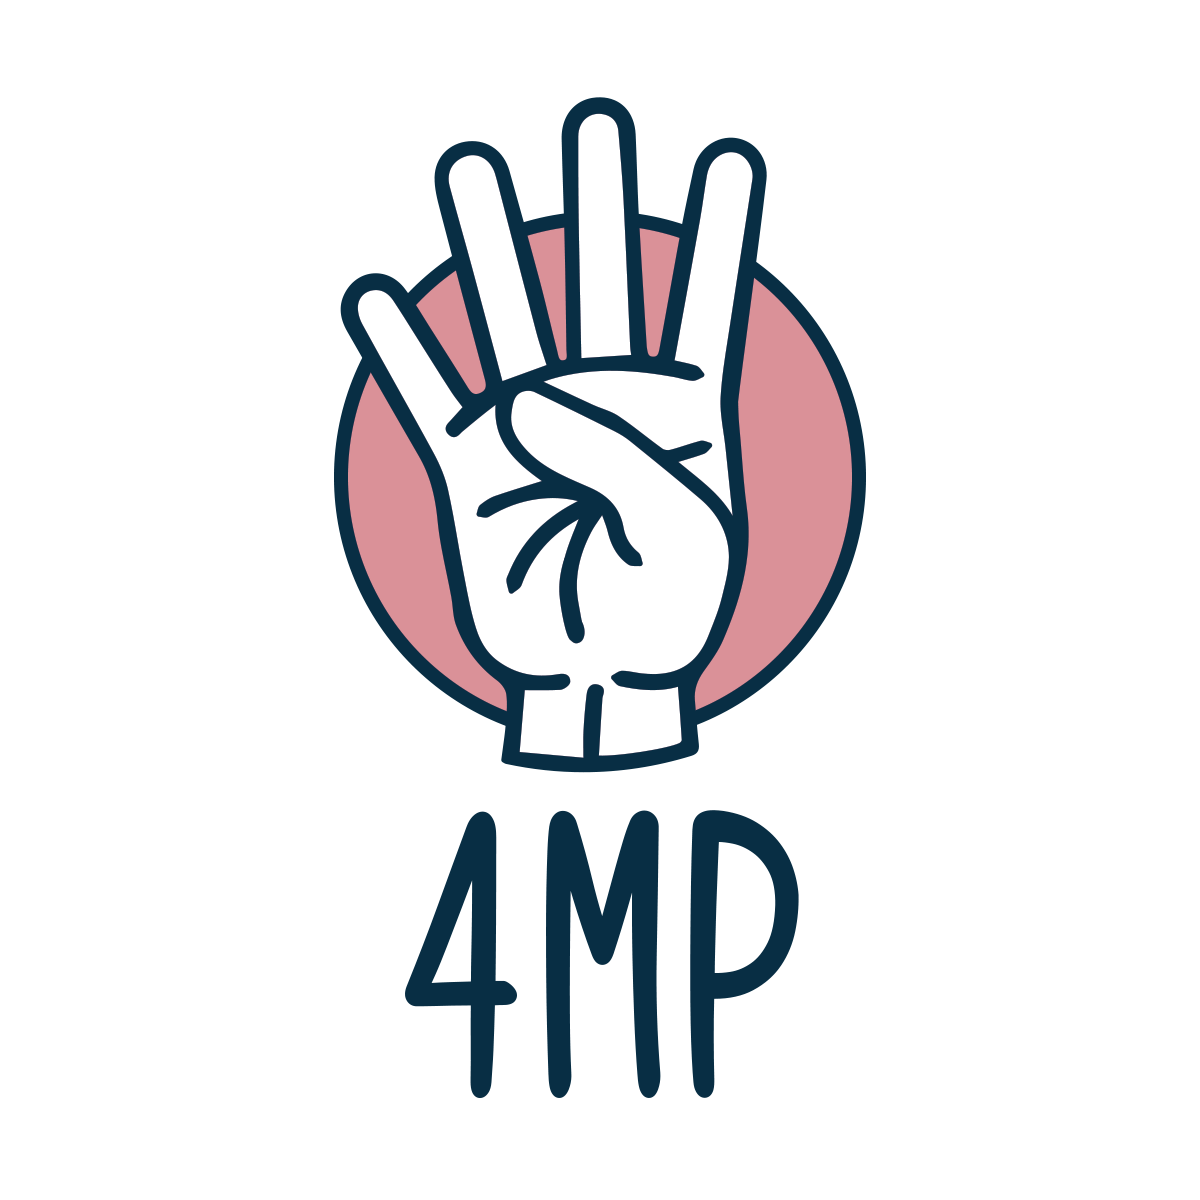 4MP_02_A.png